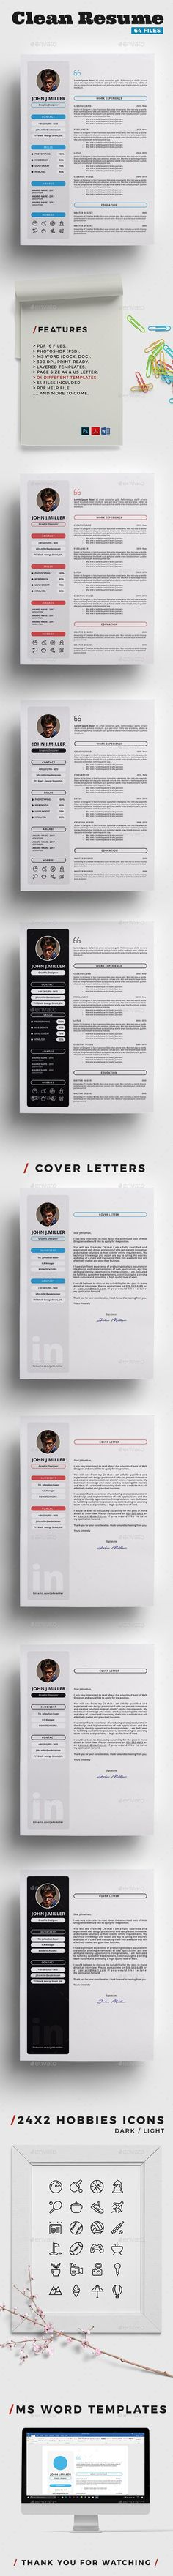 Resume Templates Clean Resume - Resumes Stationery